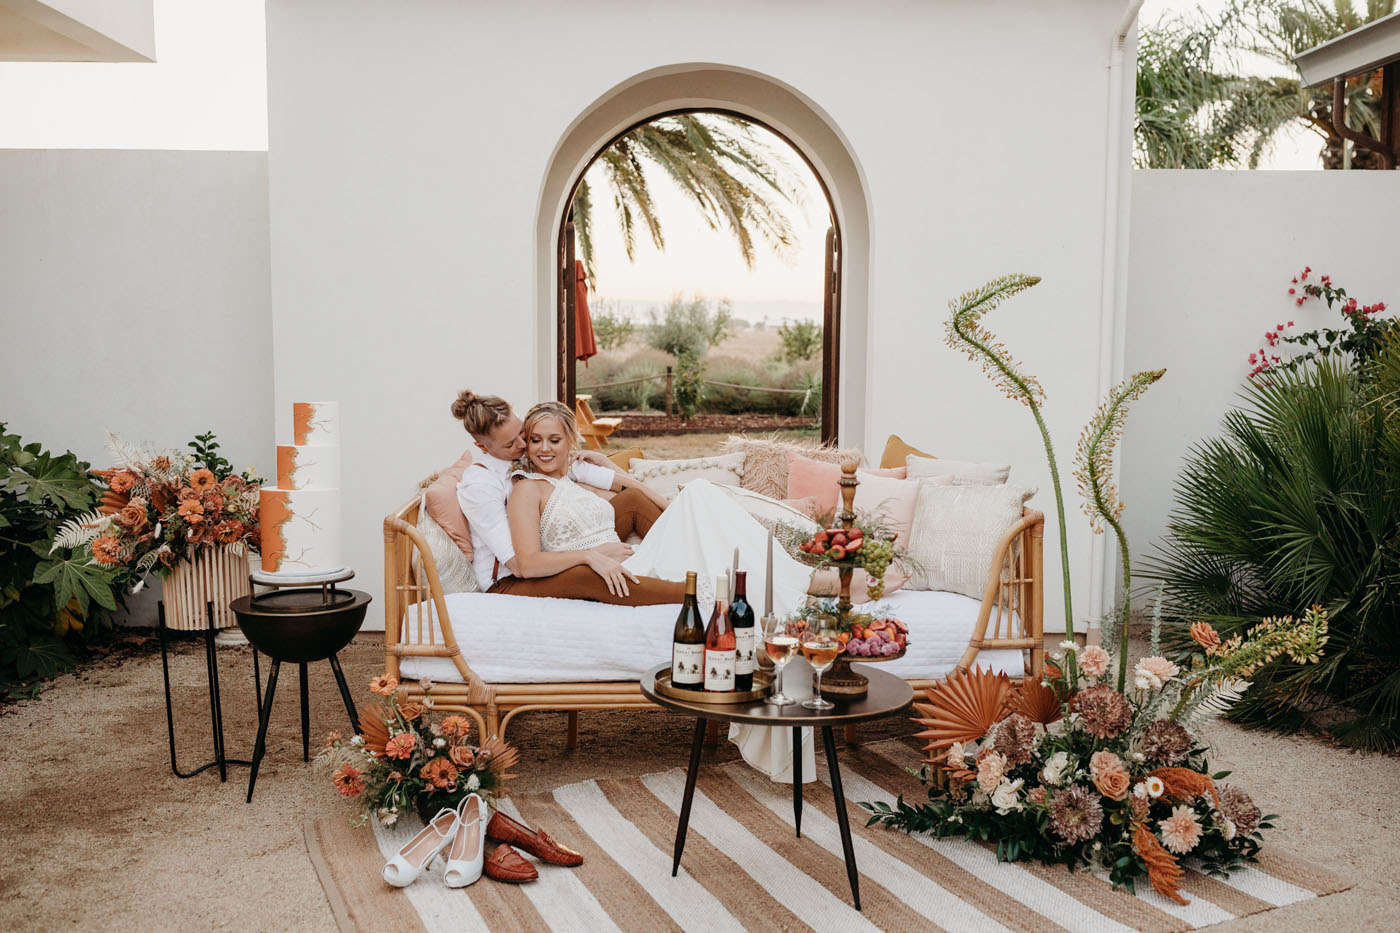 Modern desert yet Cal wedding inspiration